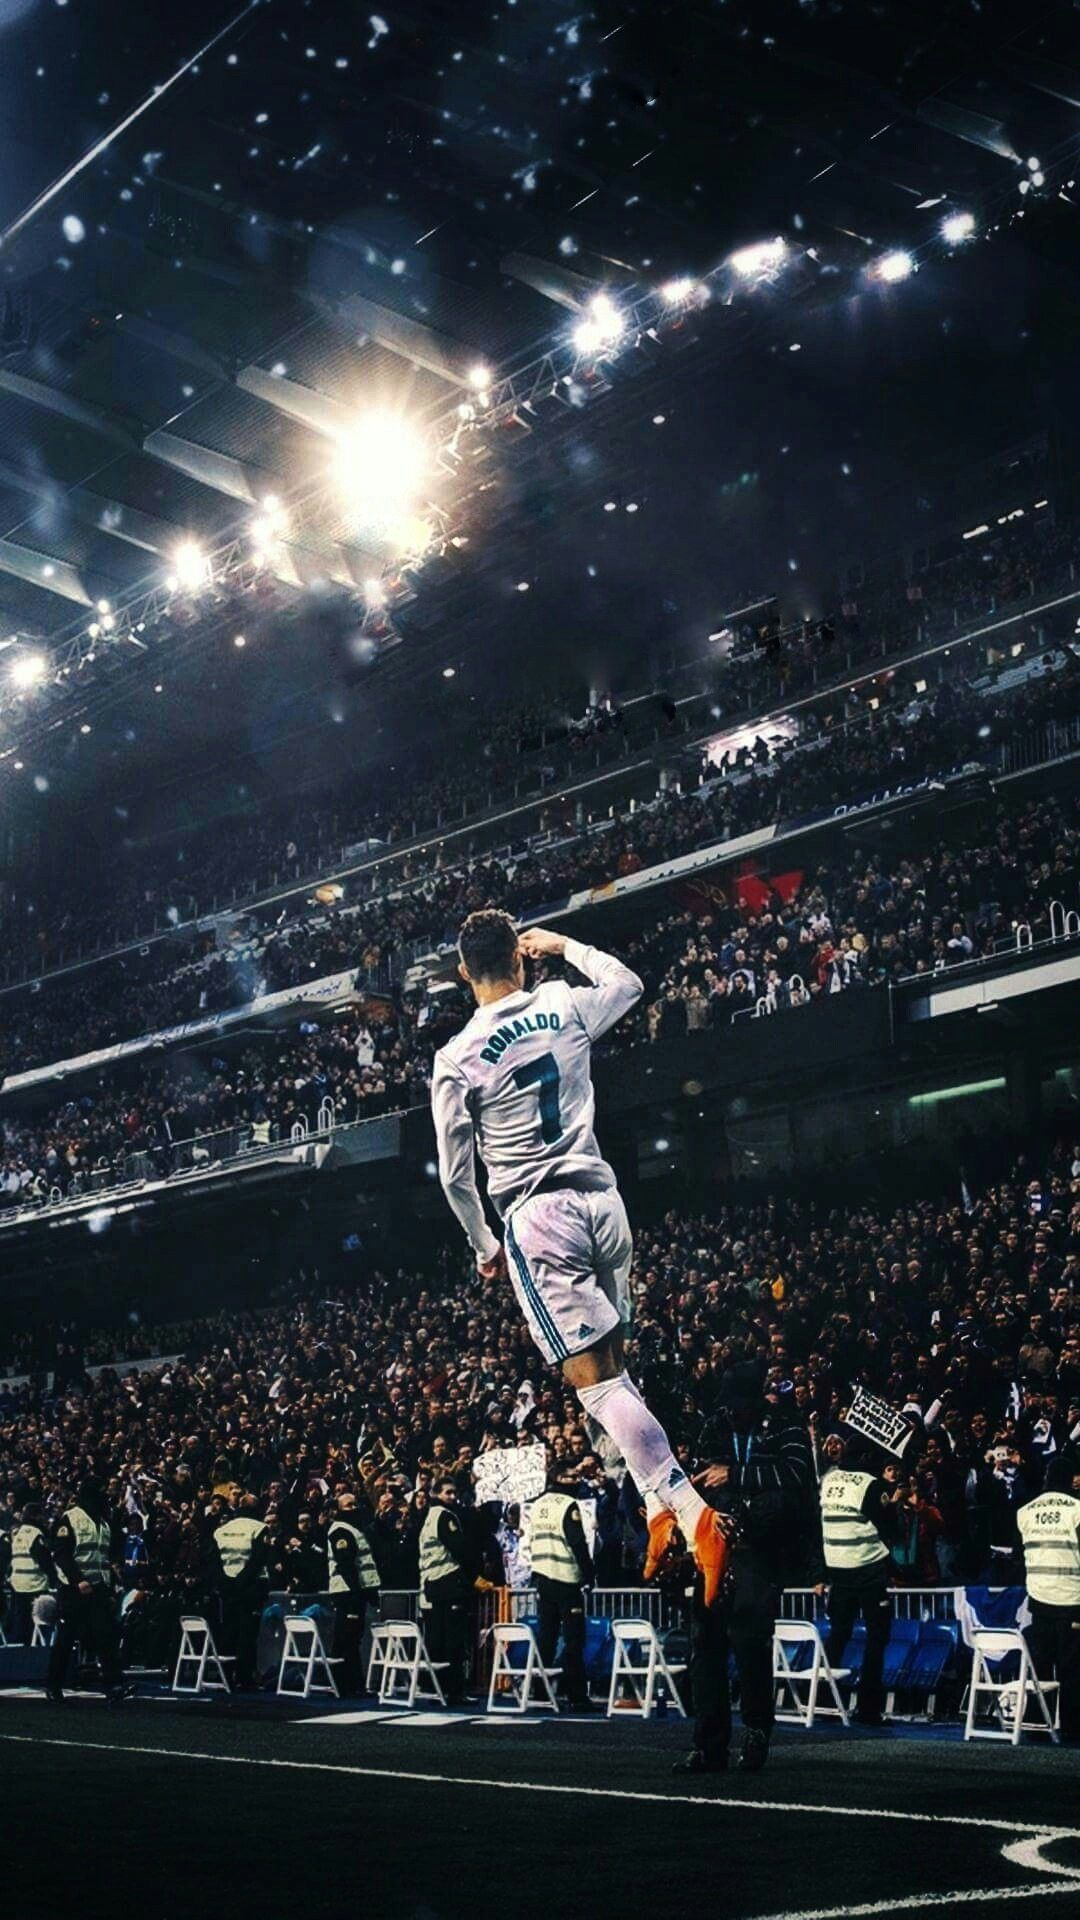 Wallpapers Hd Real Madrid Cristiano Ronaldo Football Goal Celebration Iphone